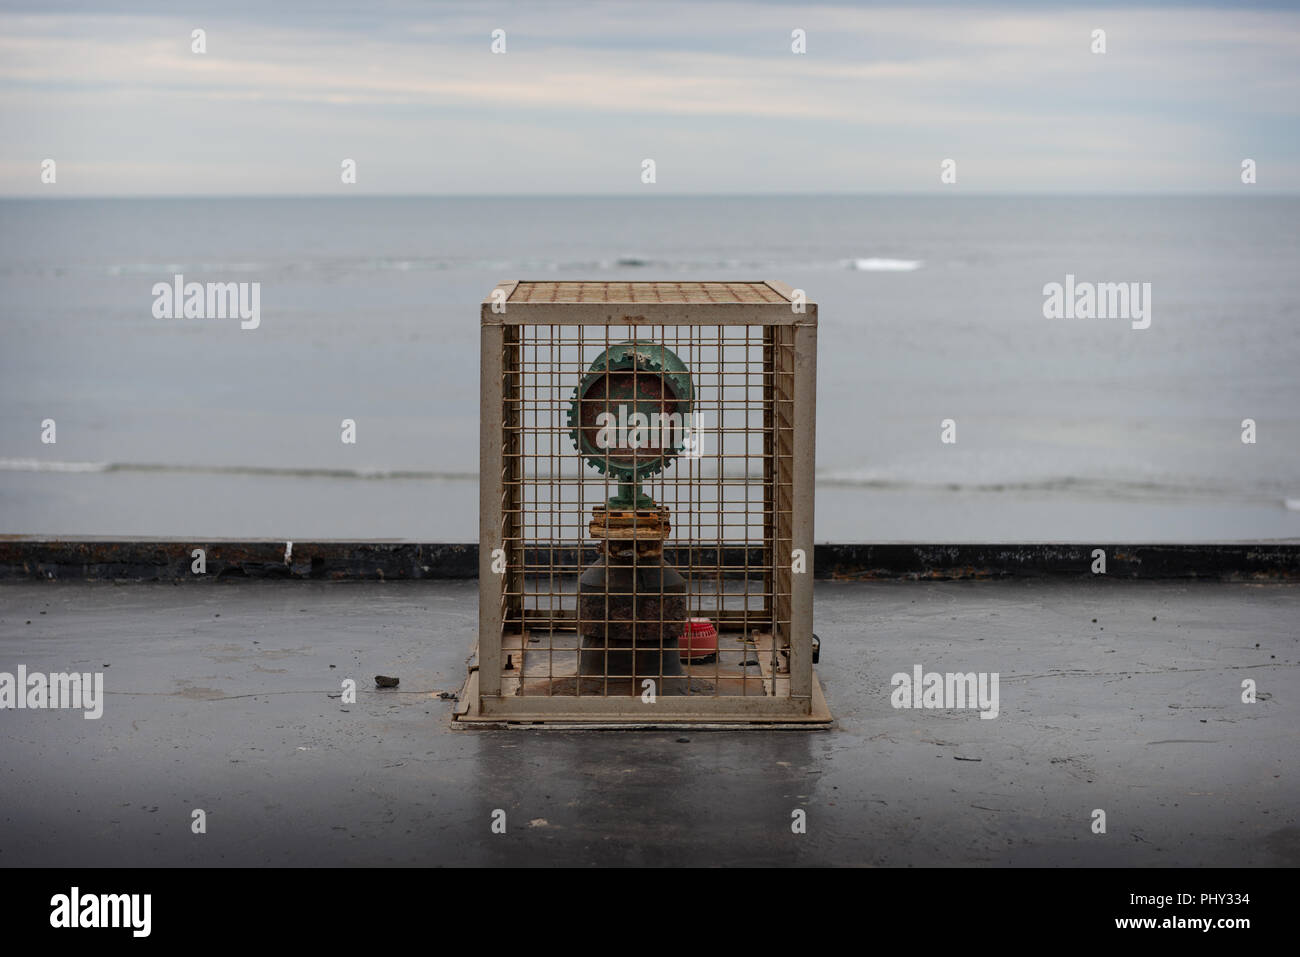 A caged object with ocean backdrop - Stock Image